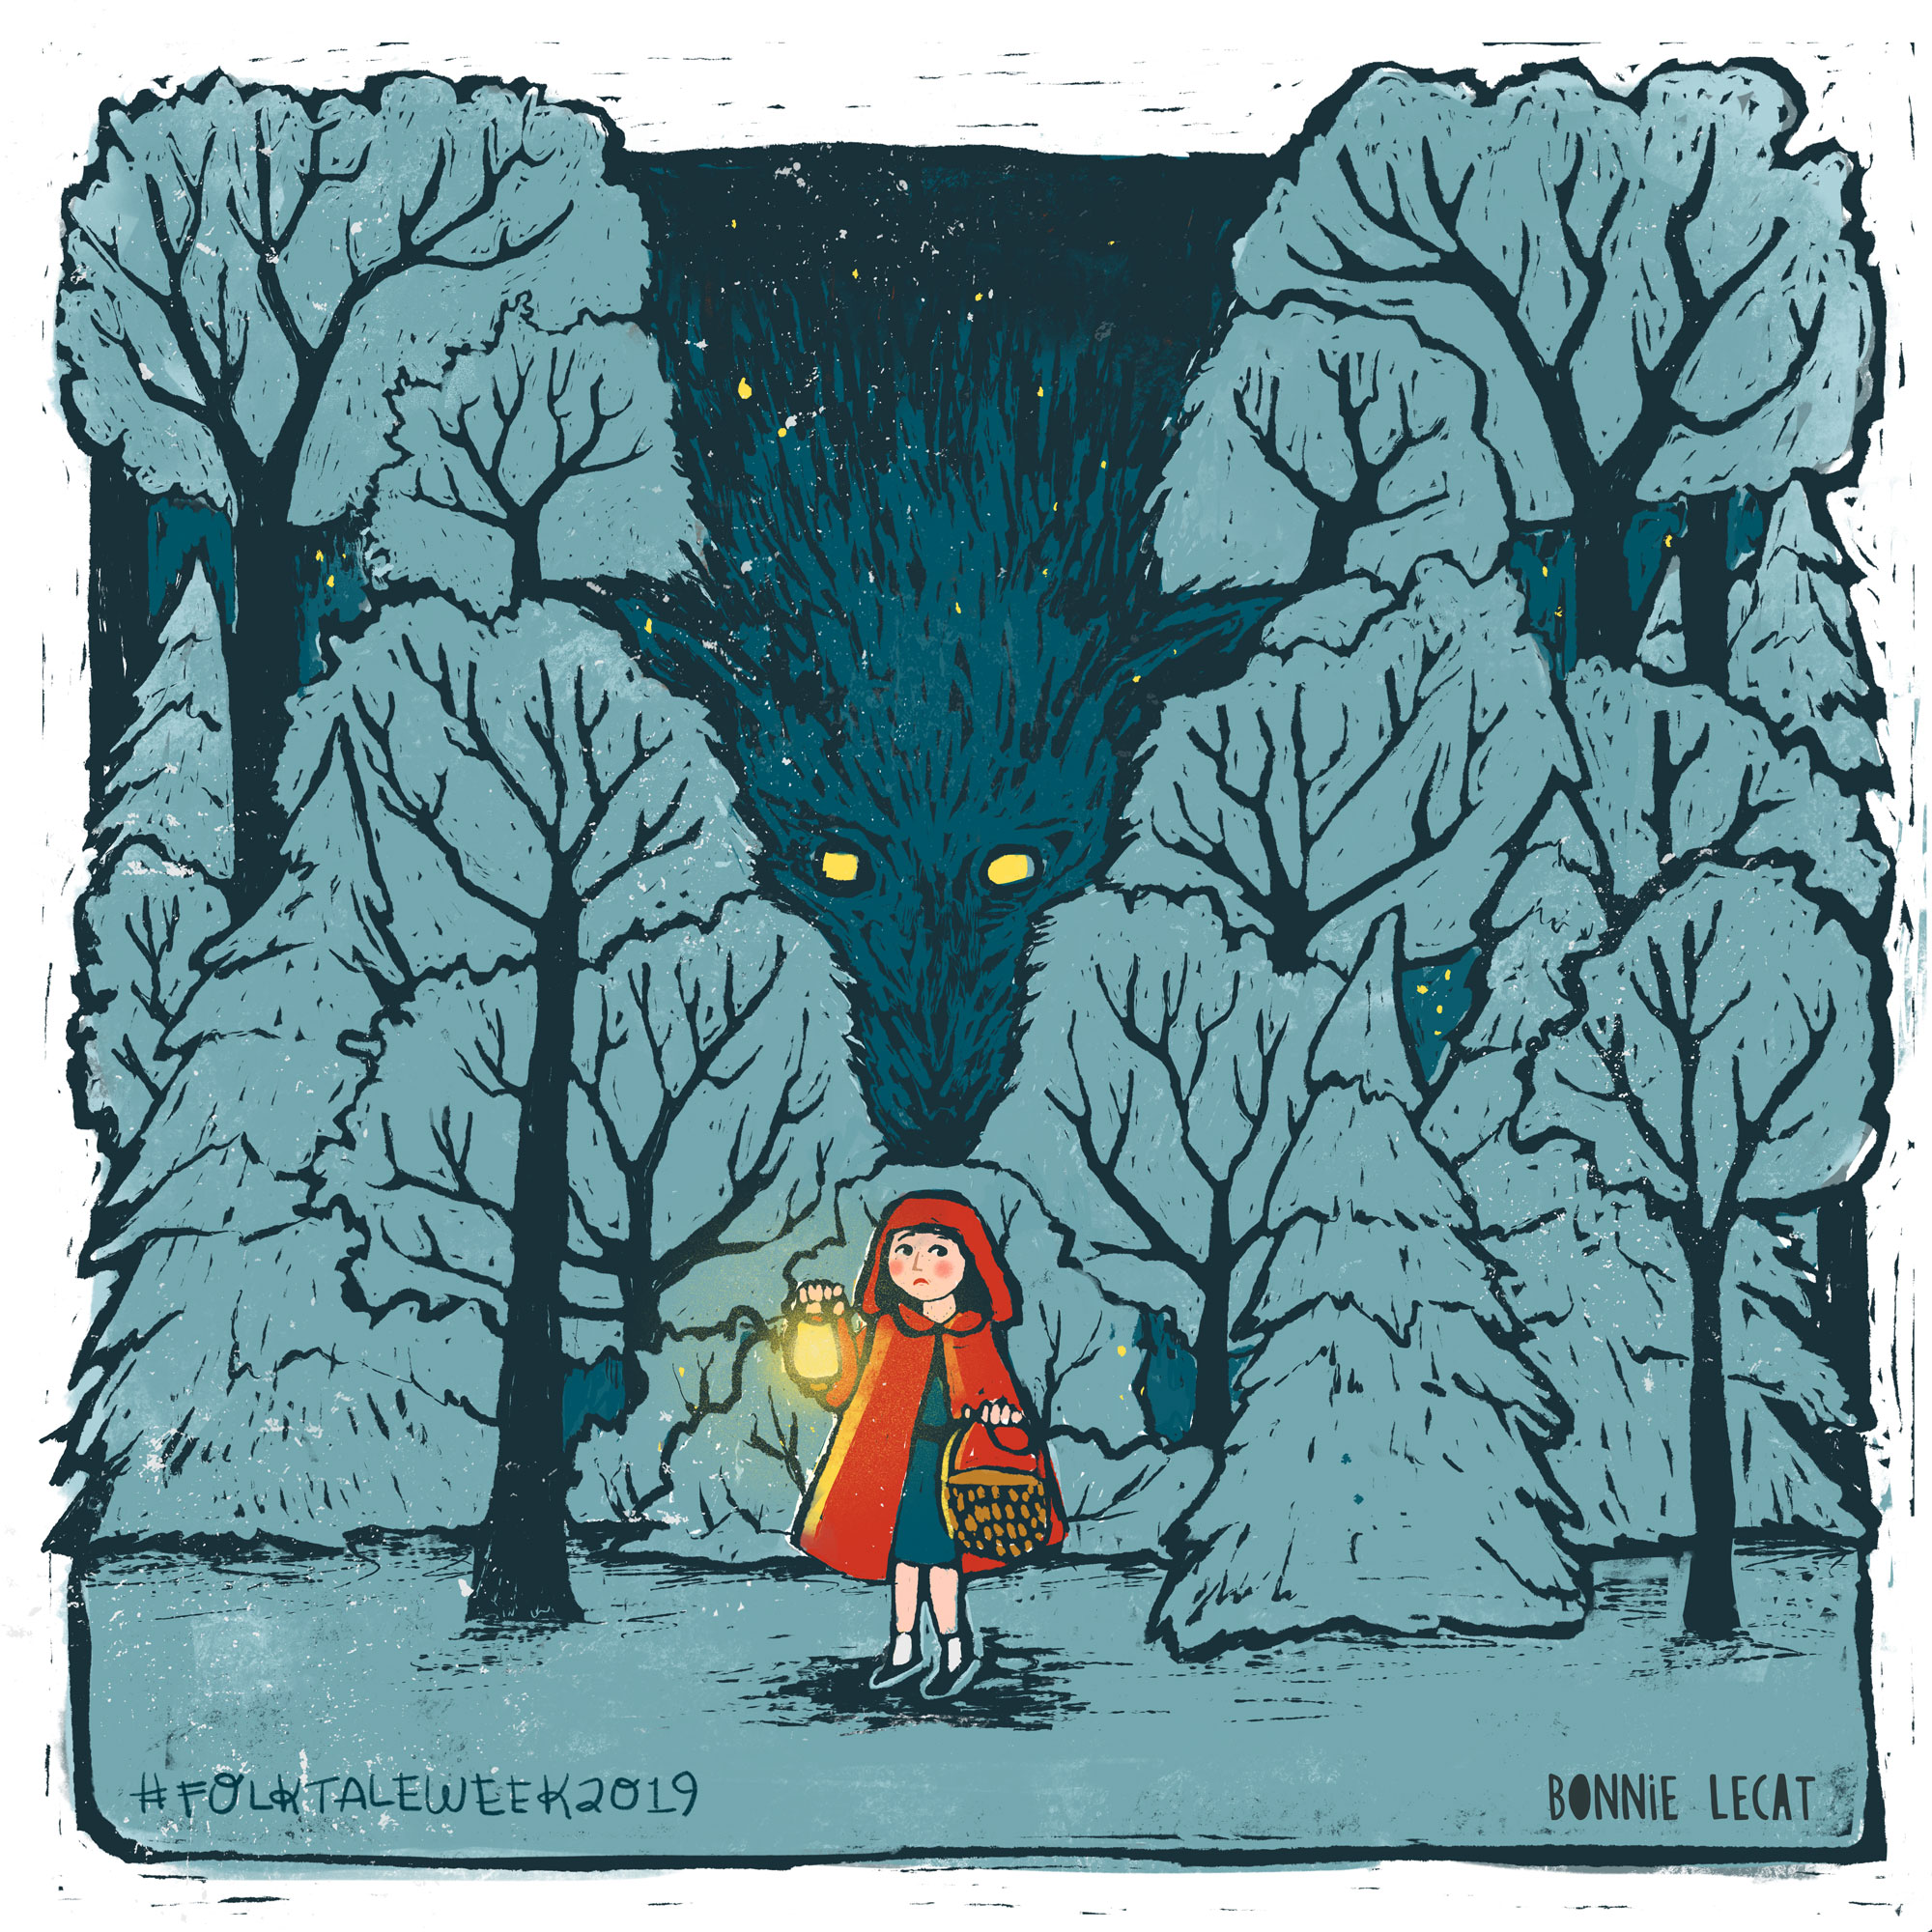 Little Red Riding Children's Book Illustration by Bonnie Lecat